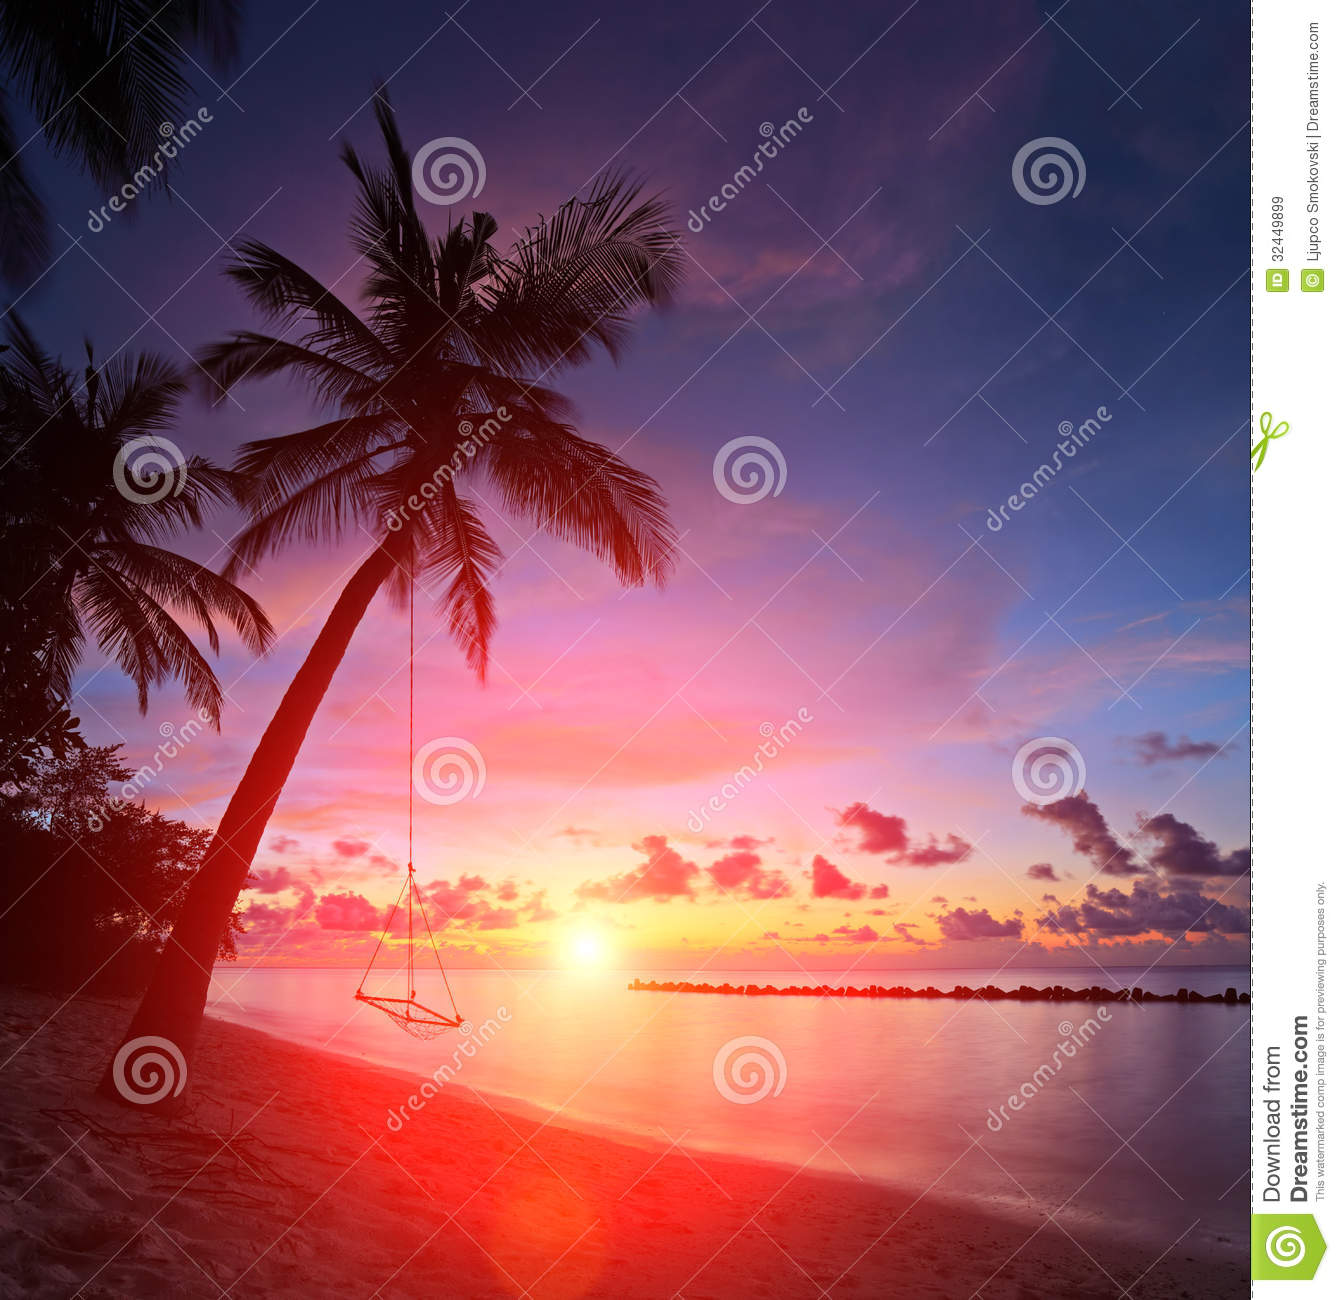 beach sunset with palm trees. view of a beach with palm trees and swing at sunset maldives royalty free stock images image 32449899